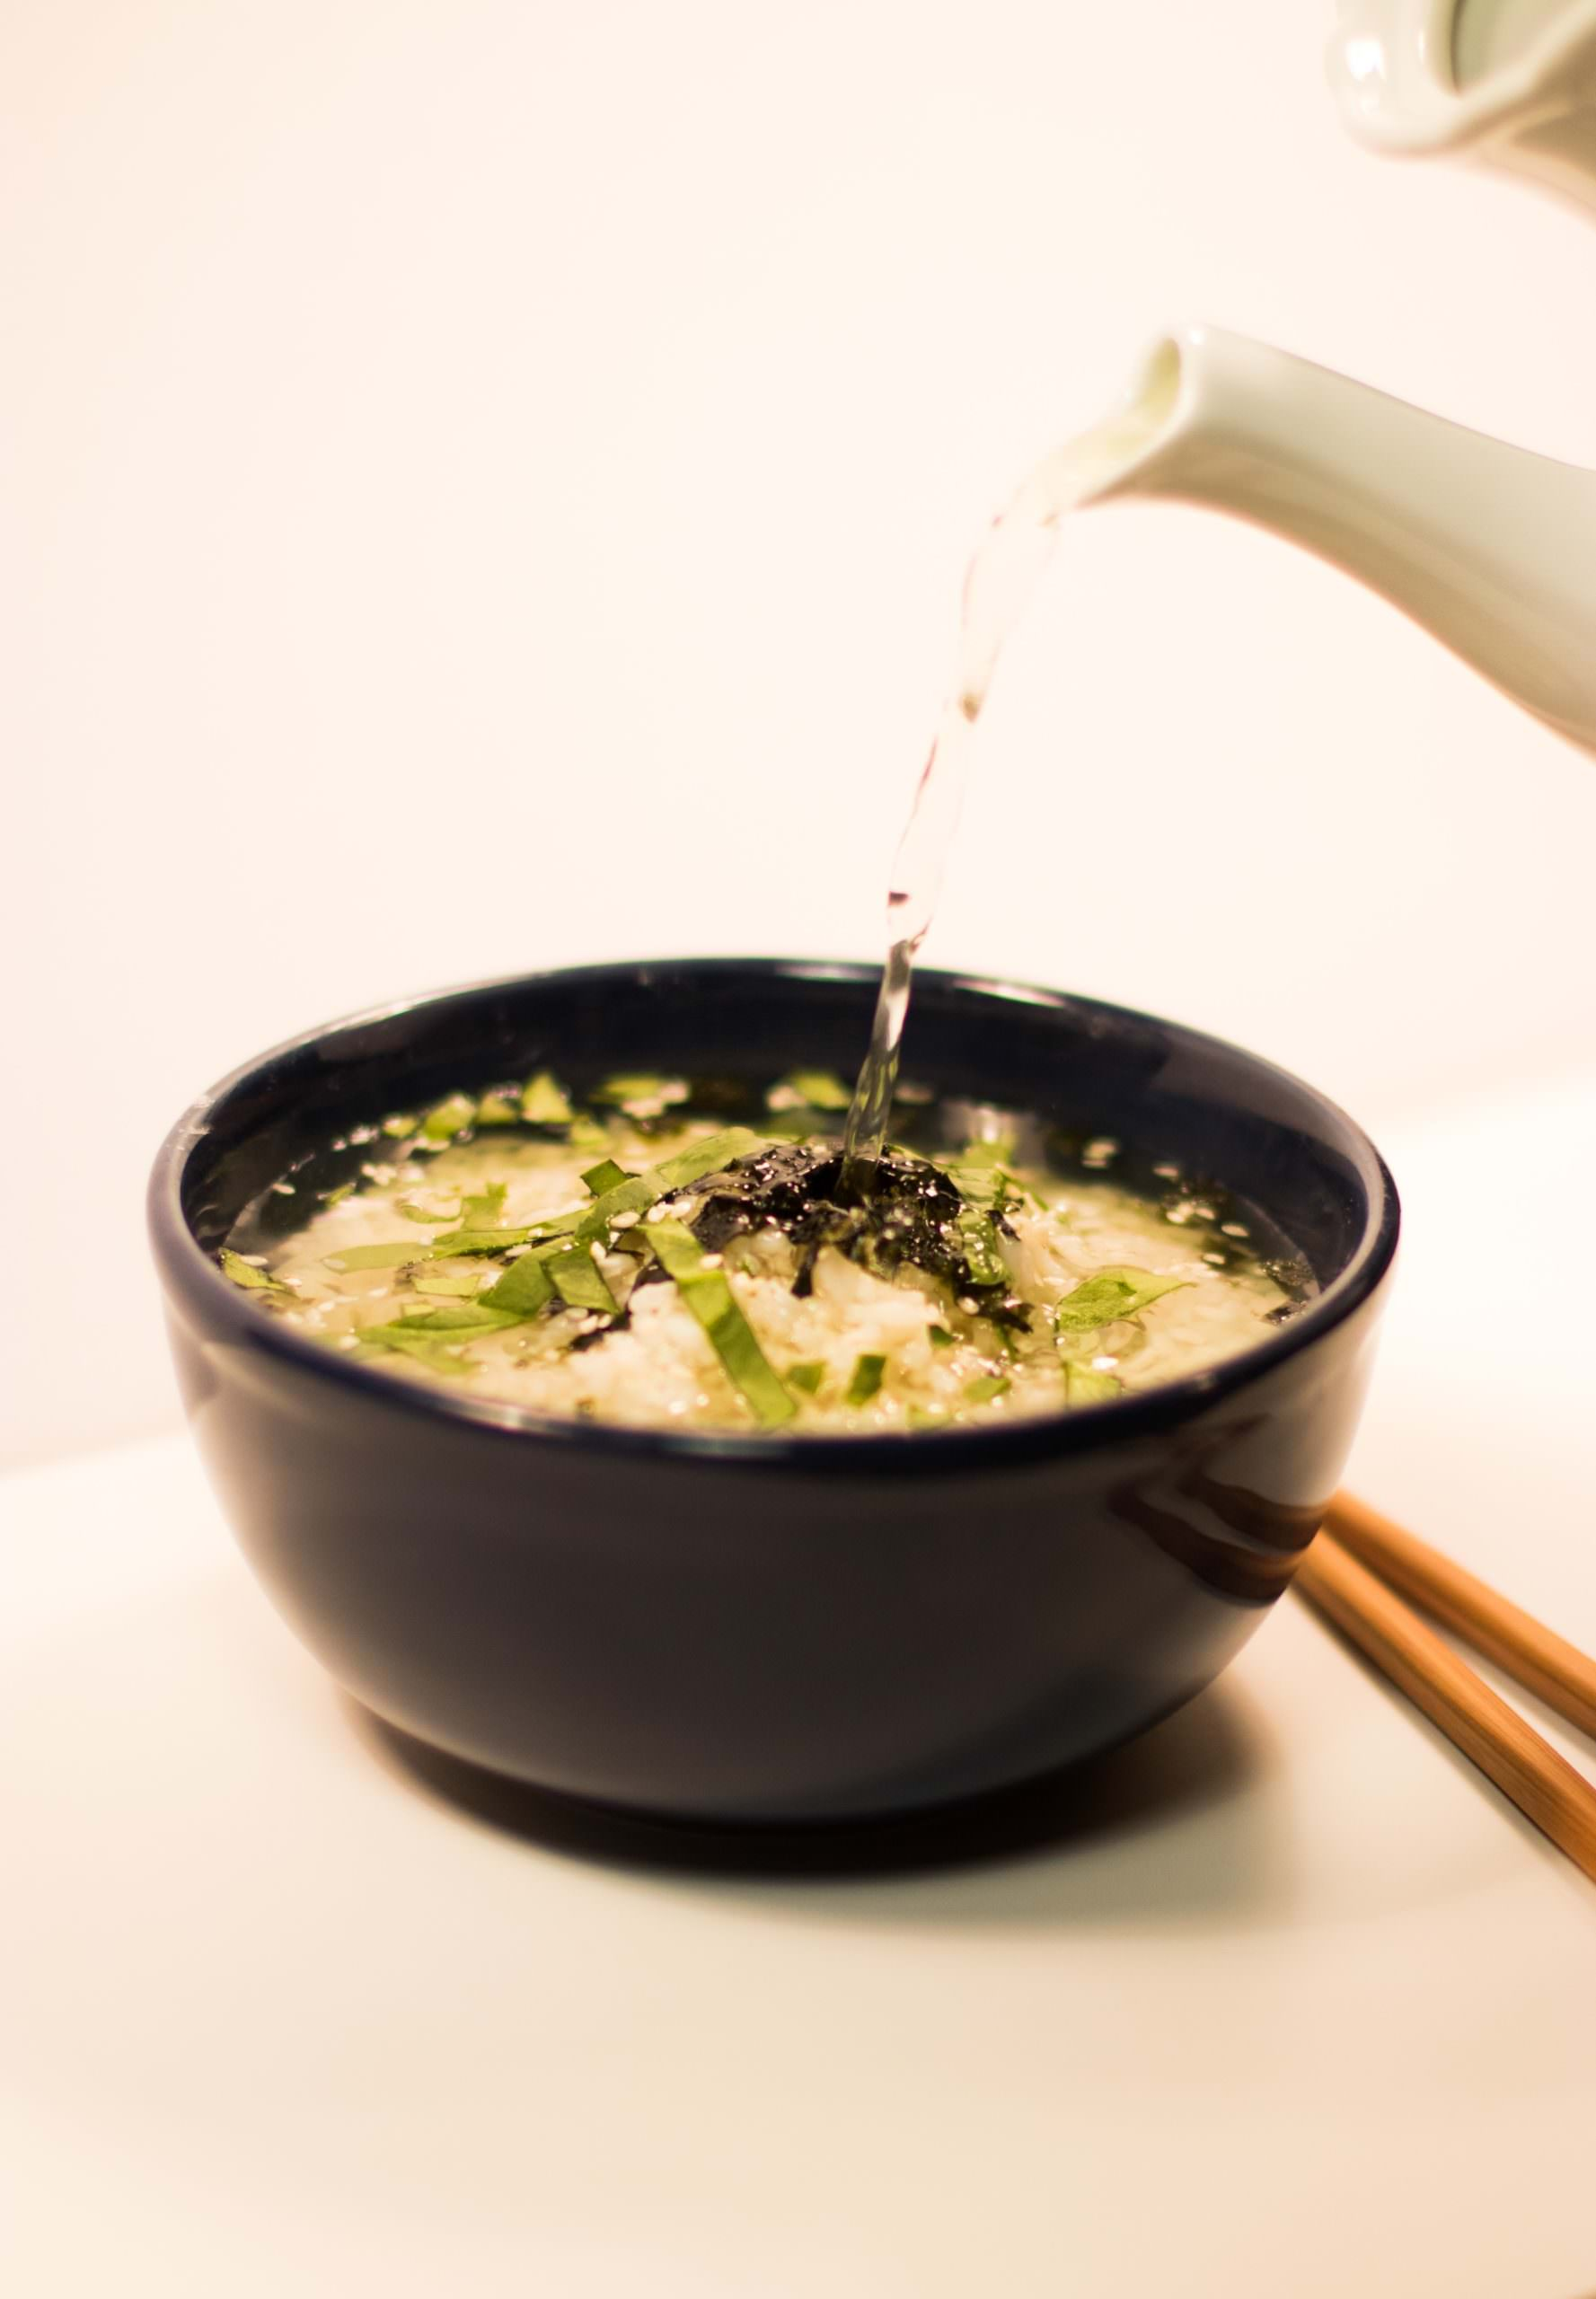 What is Congee?